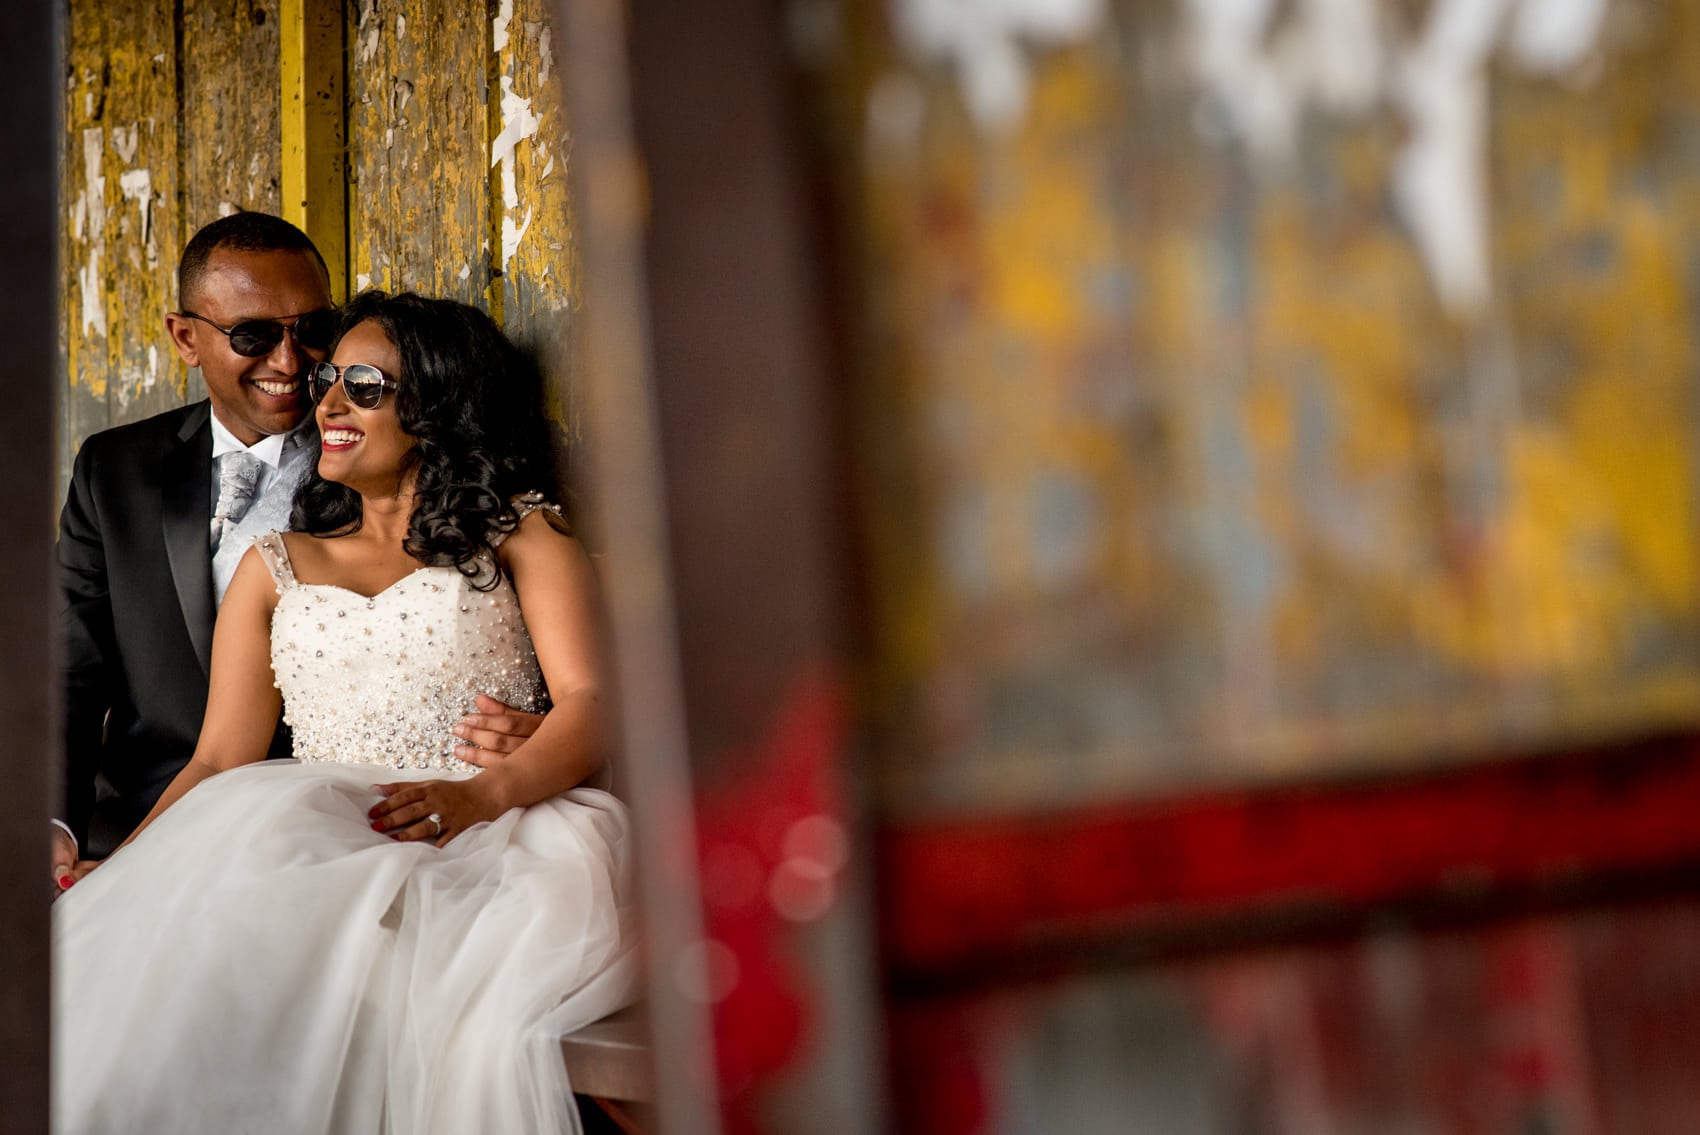 bride and groom portraits at a bus stop in Ethiopia